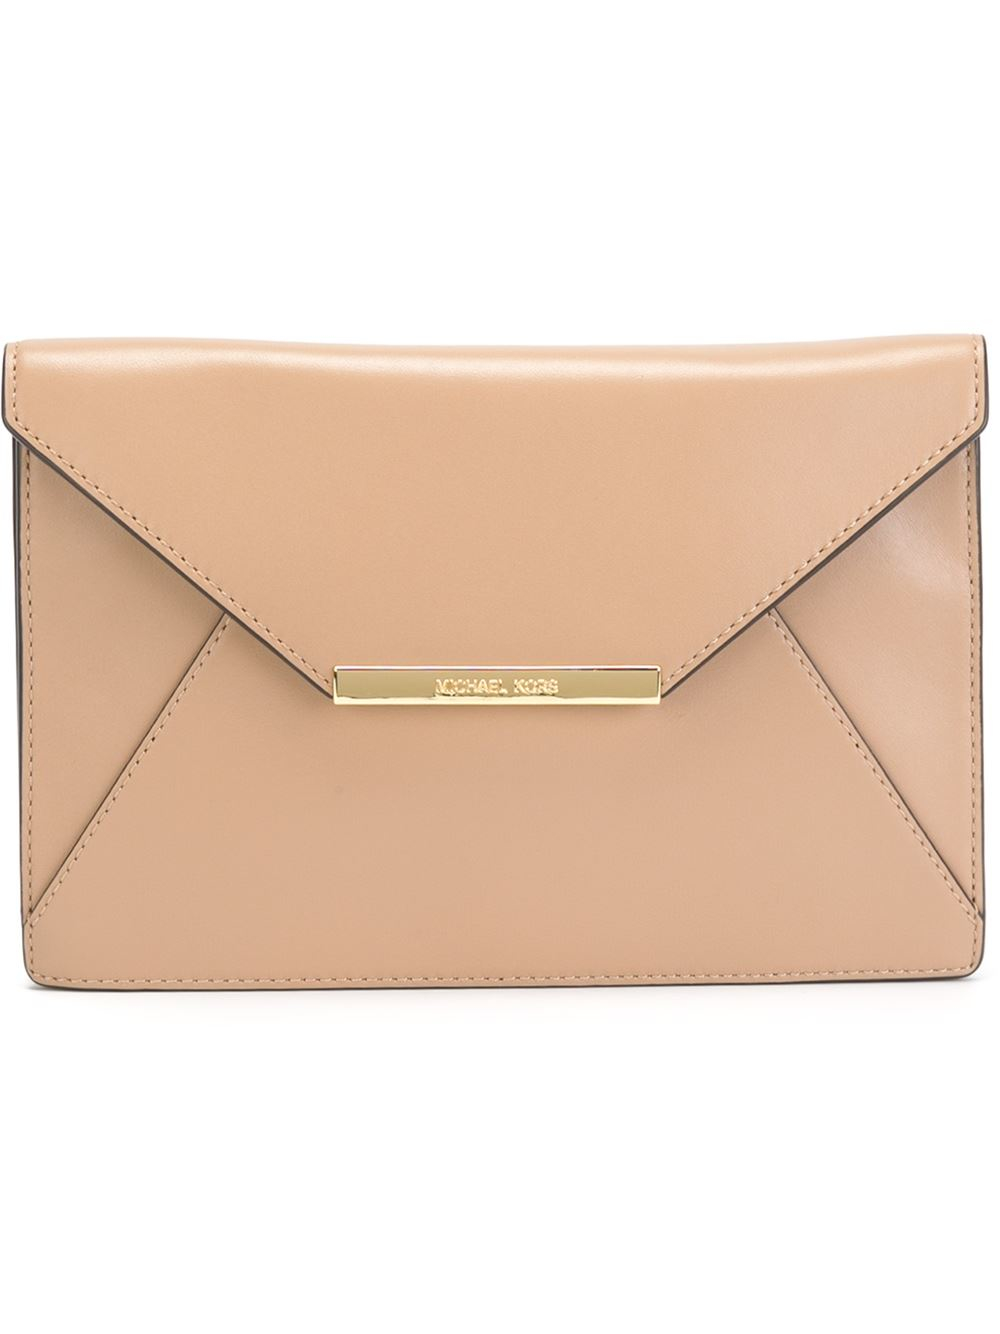 ec205043c2e62f Gallery. Previously sold at: Farfetch · Women's Michael By Michael Kors Lana